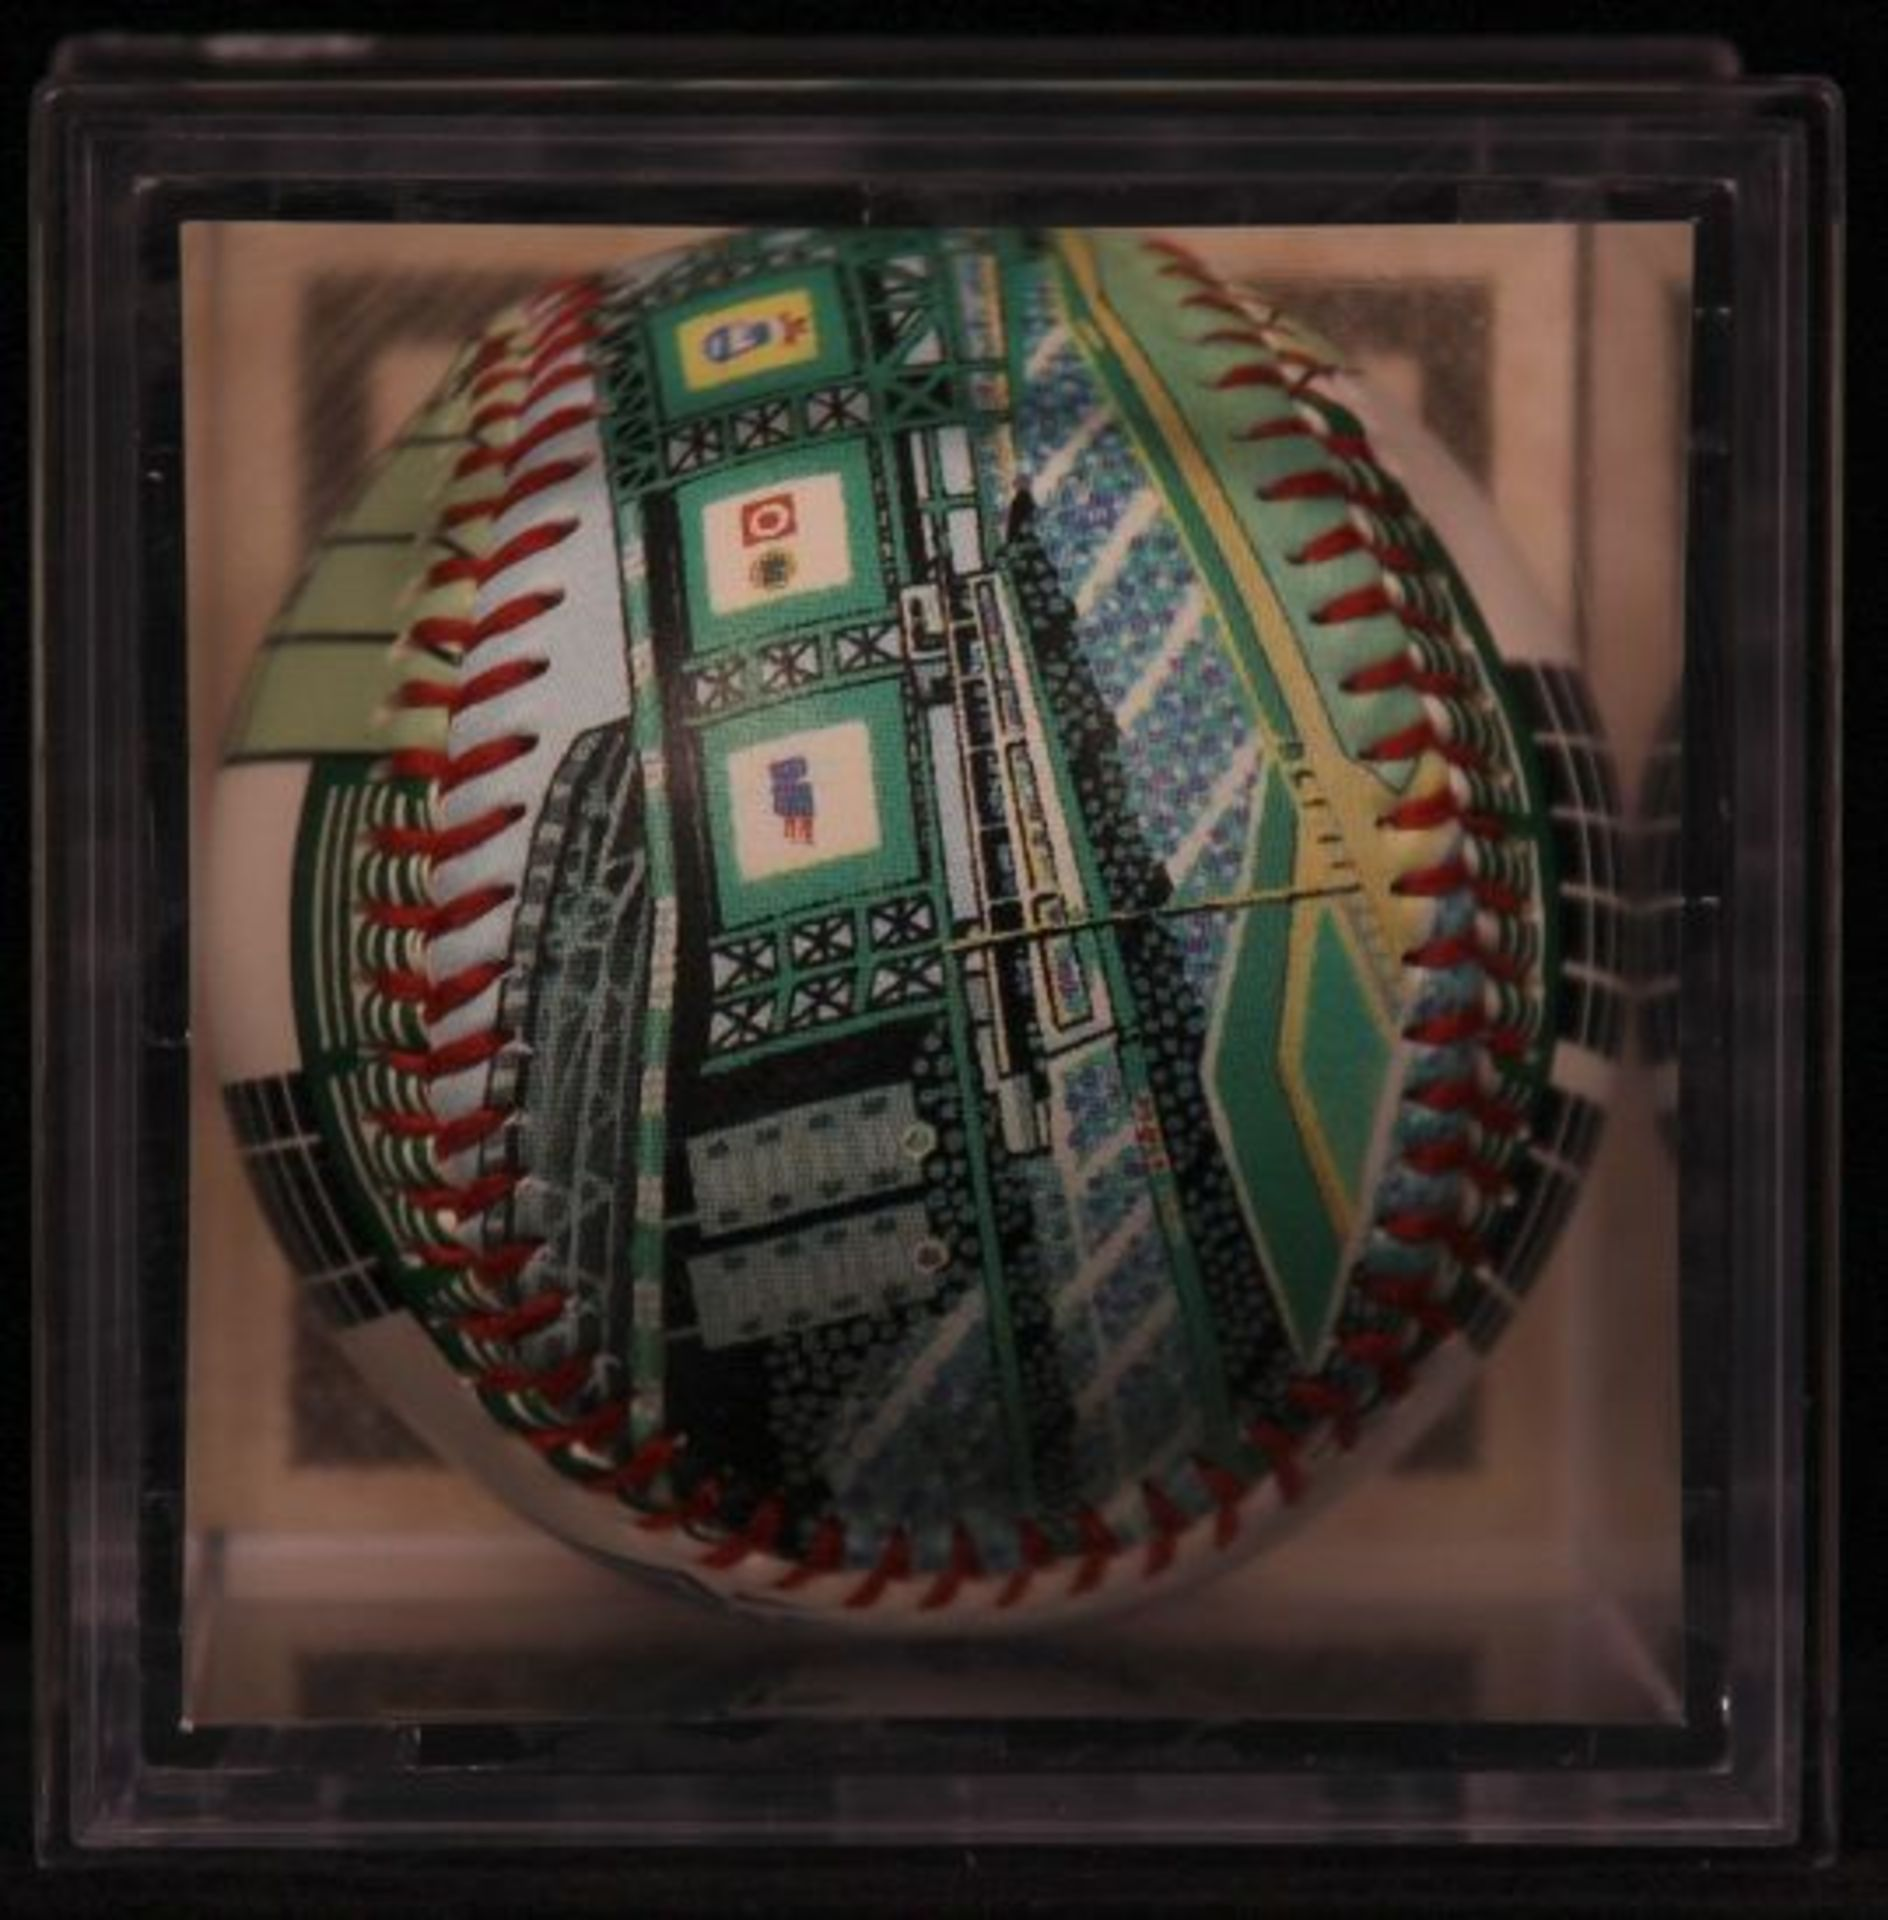 "Unforgettaball! ""Bank One Ballpark"" Collectable Baseball - Image 4 of 6"